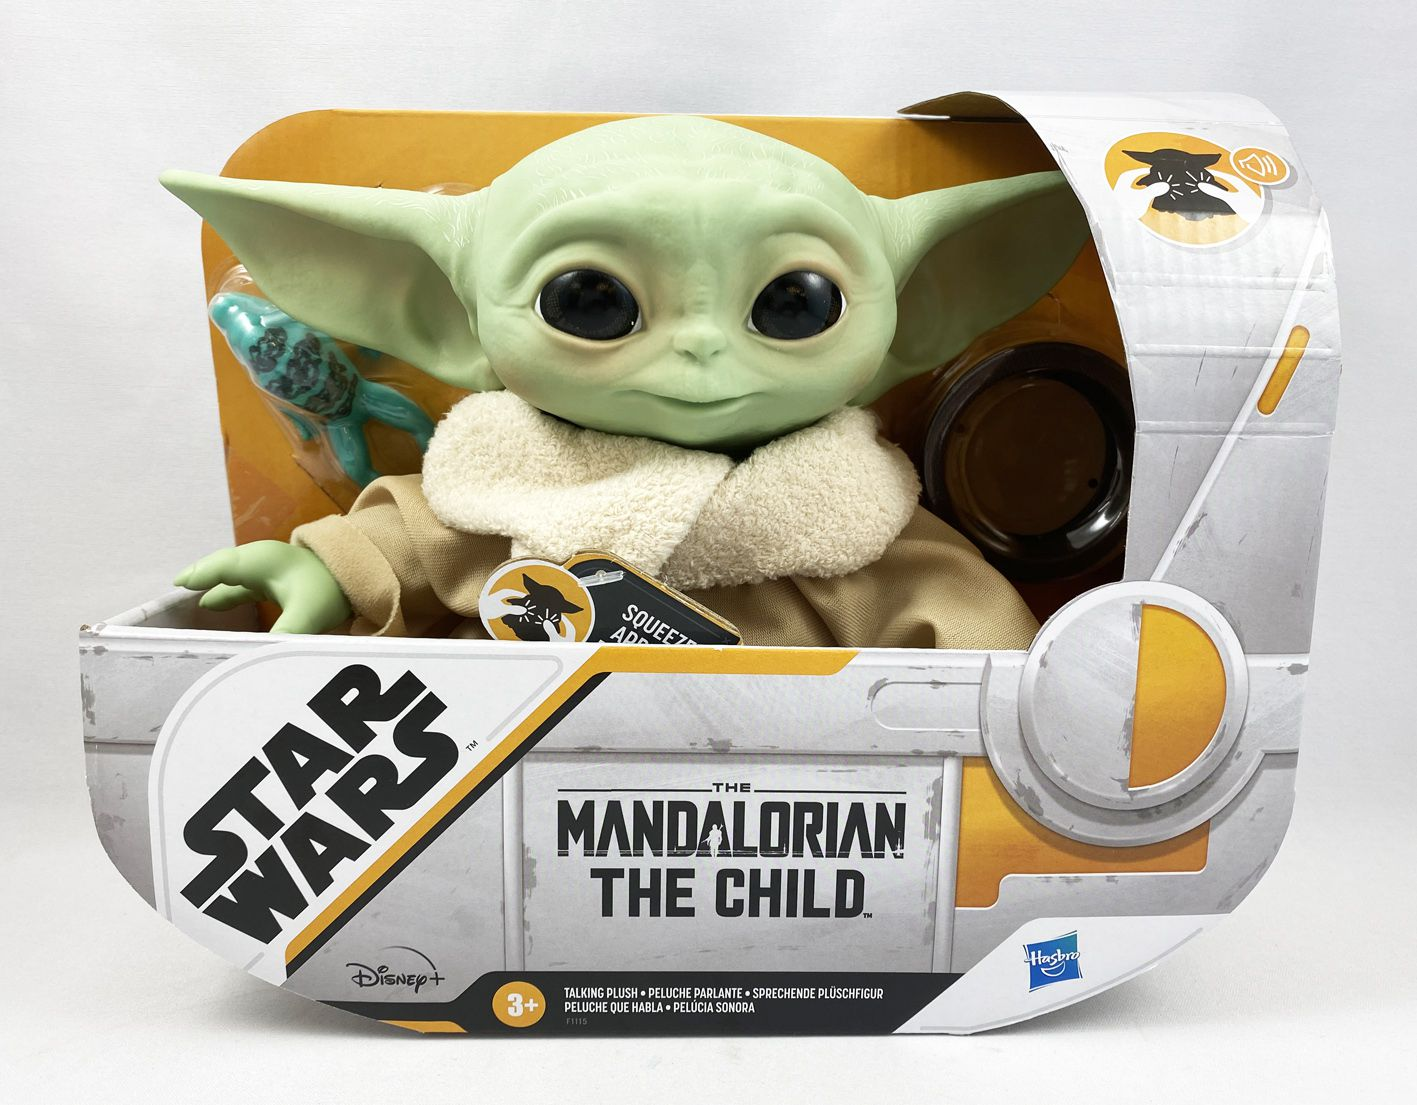 The Mandalorian - Peluche Parlante Hasbro - The Child